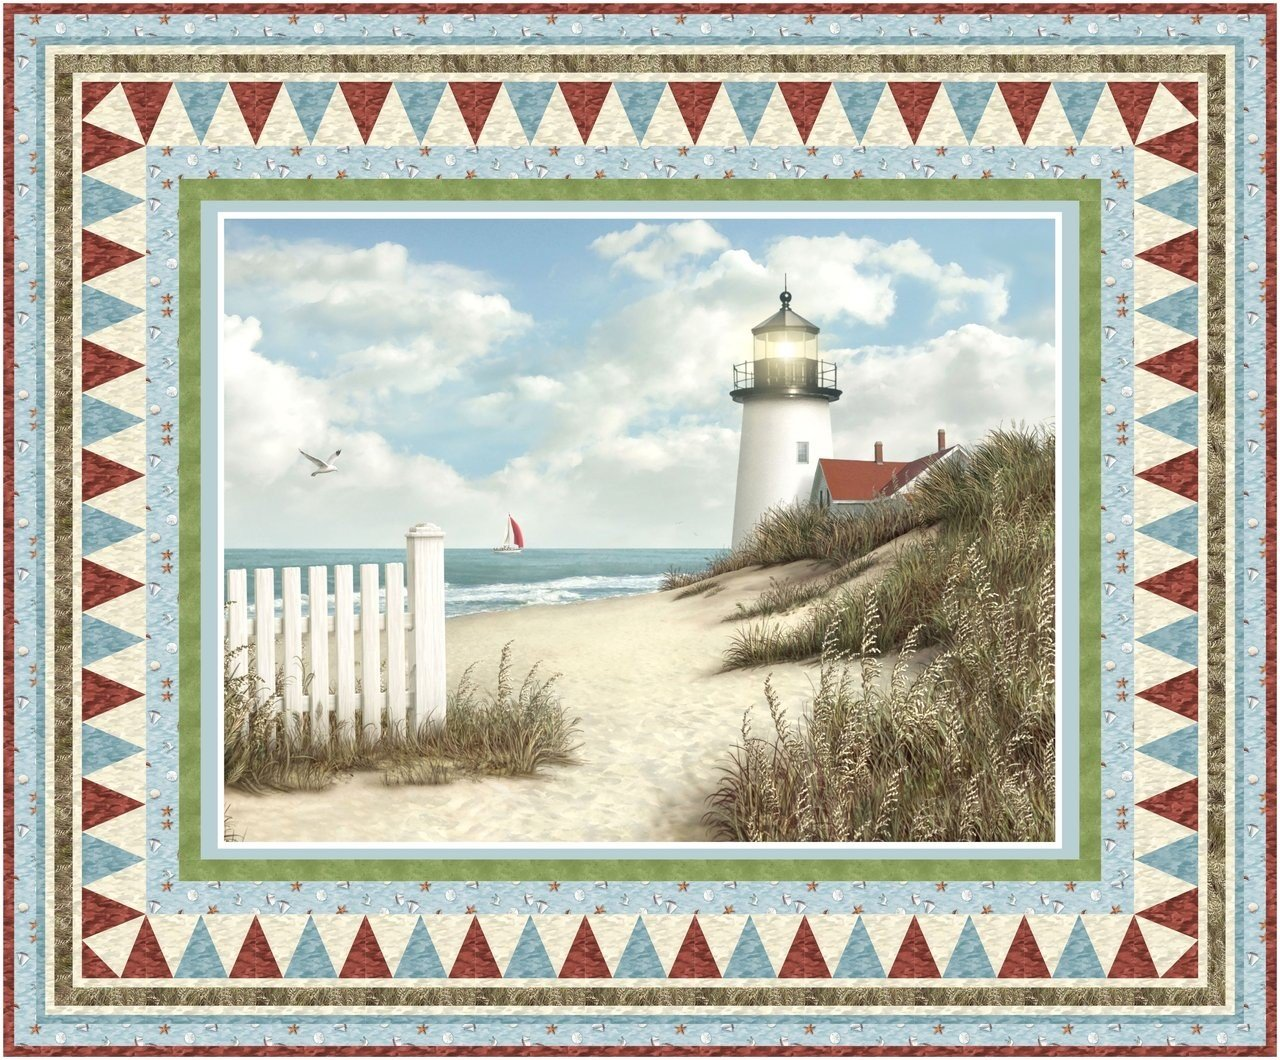 By the Peaceful Shore Quilt Kit